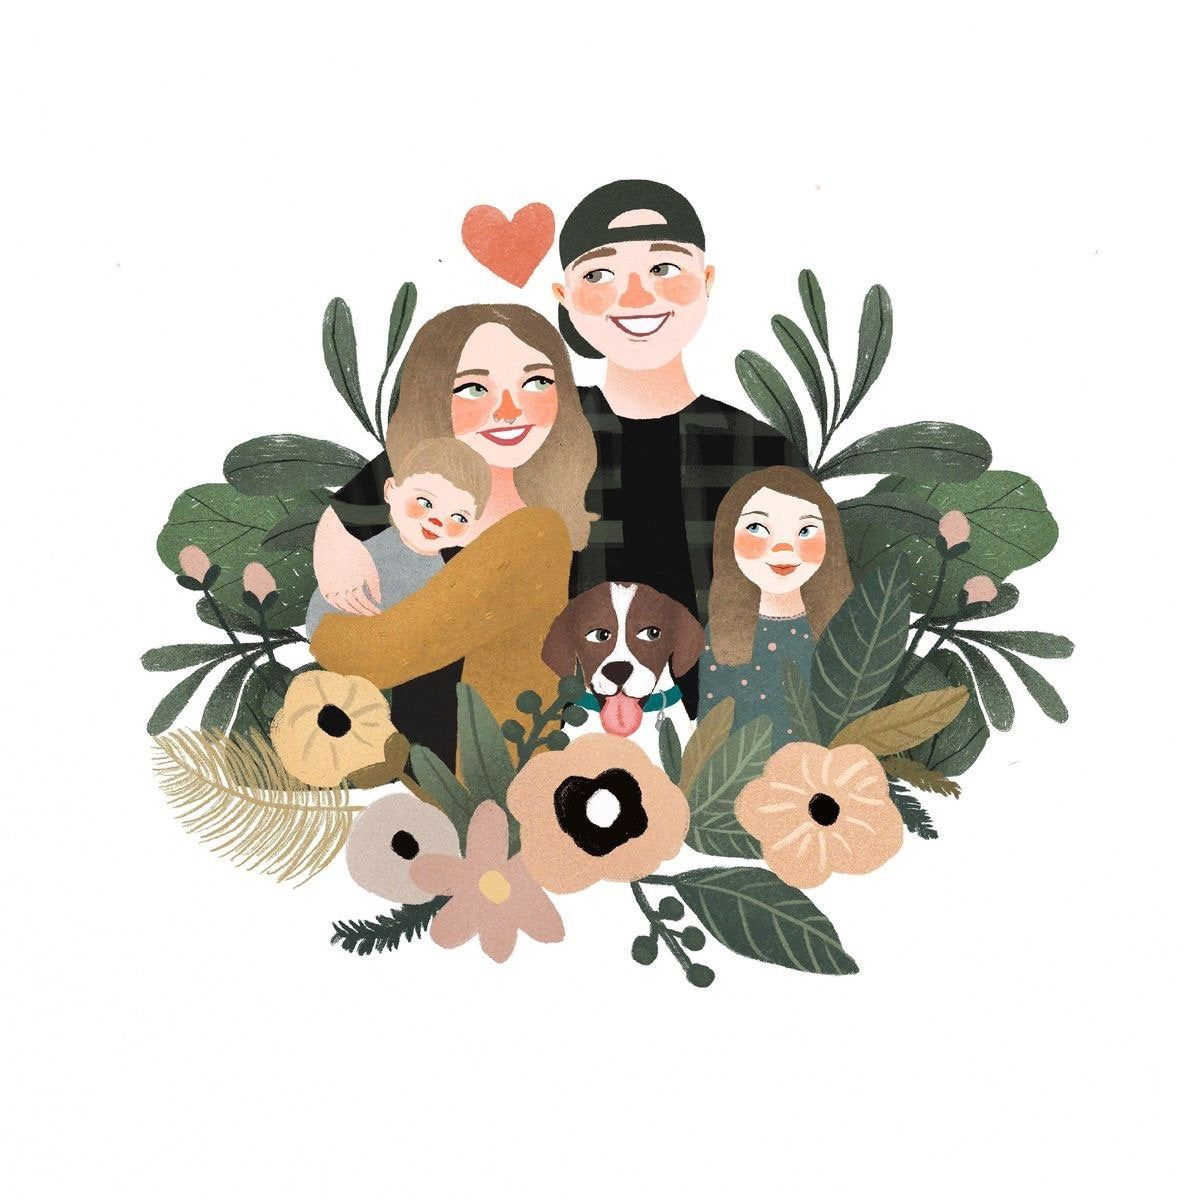 Couple Portrait, Couple illustration, Gift ideas, Custom portrait, Family portrait, Family illustration, Wedding gift